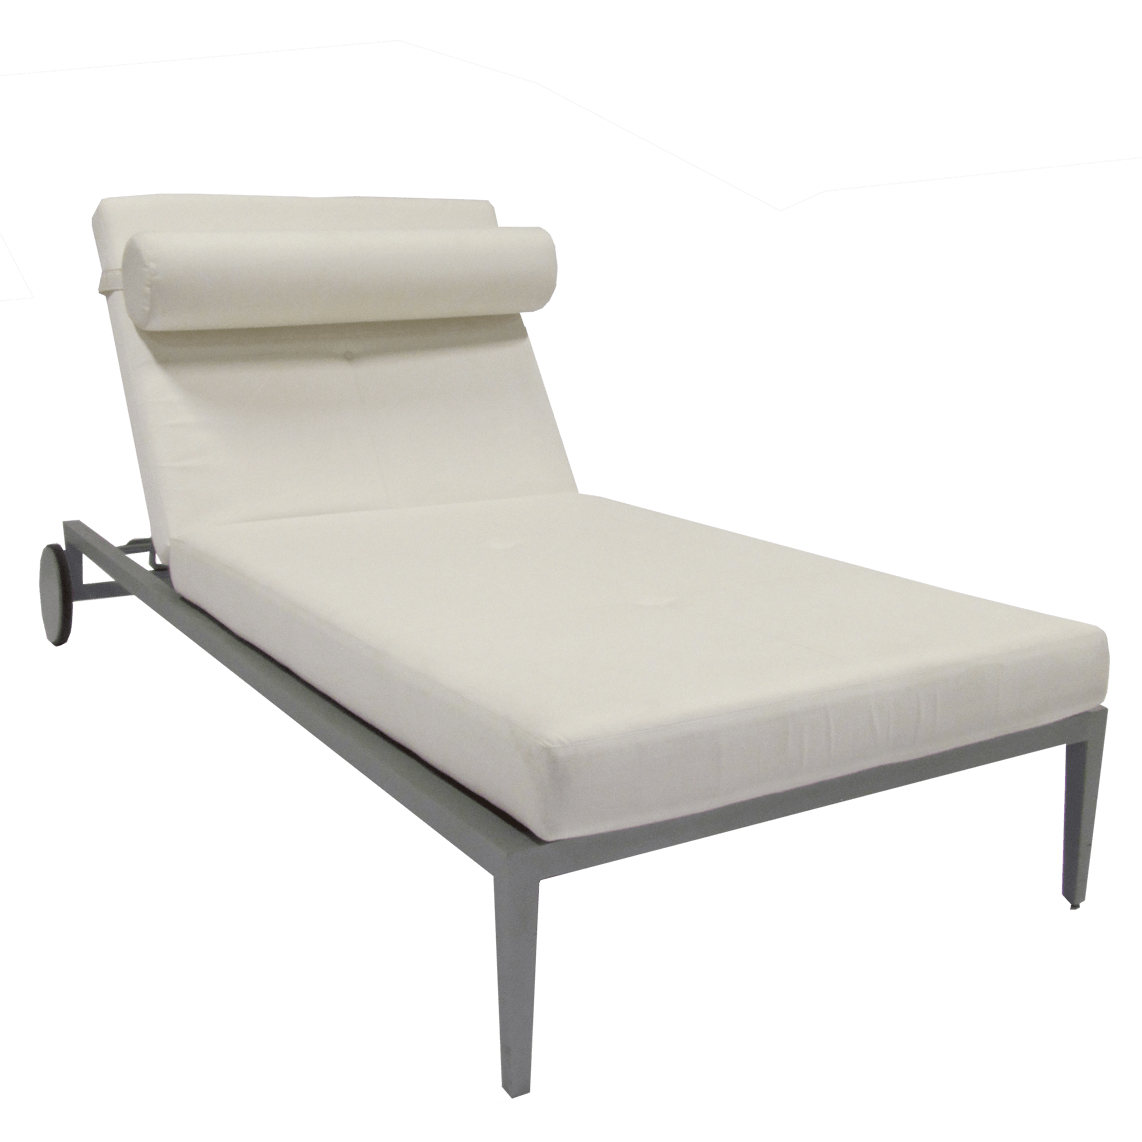 McGuire Archetype Chaise Lounge